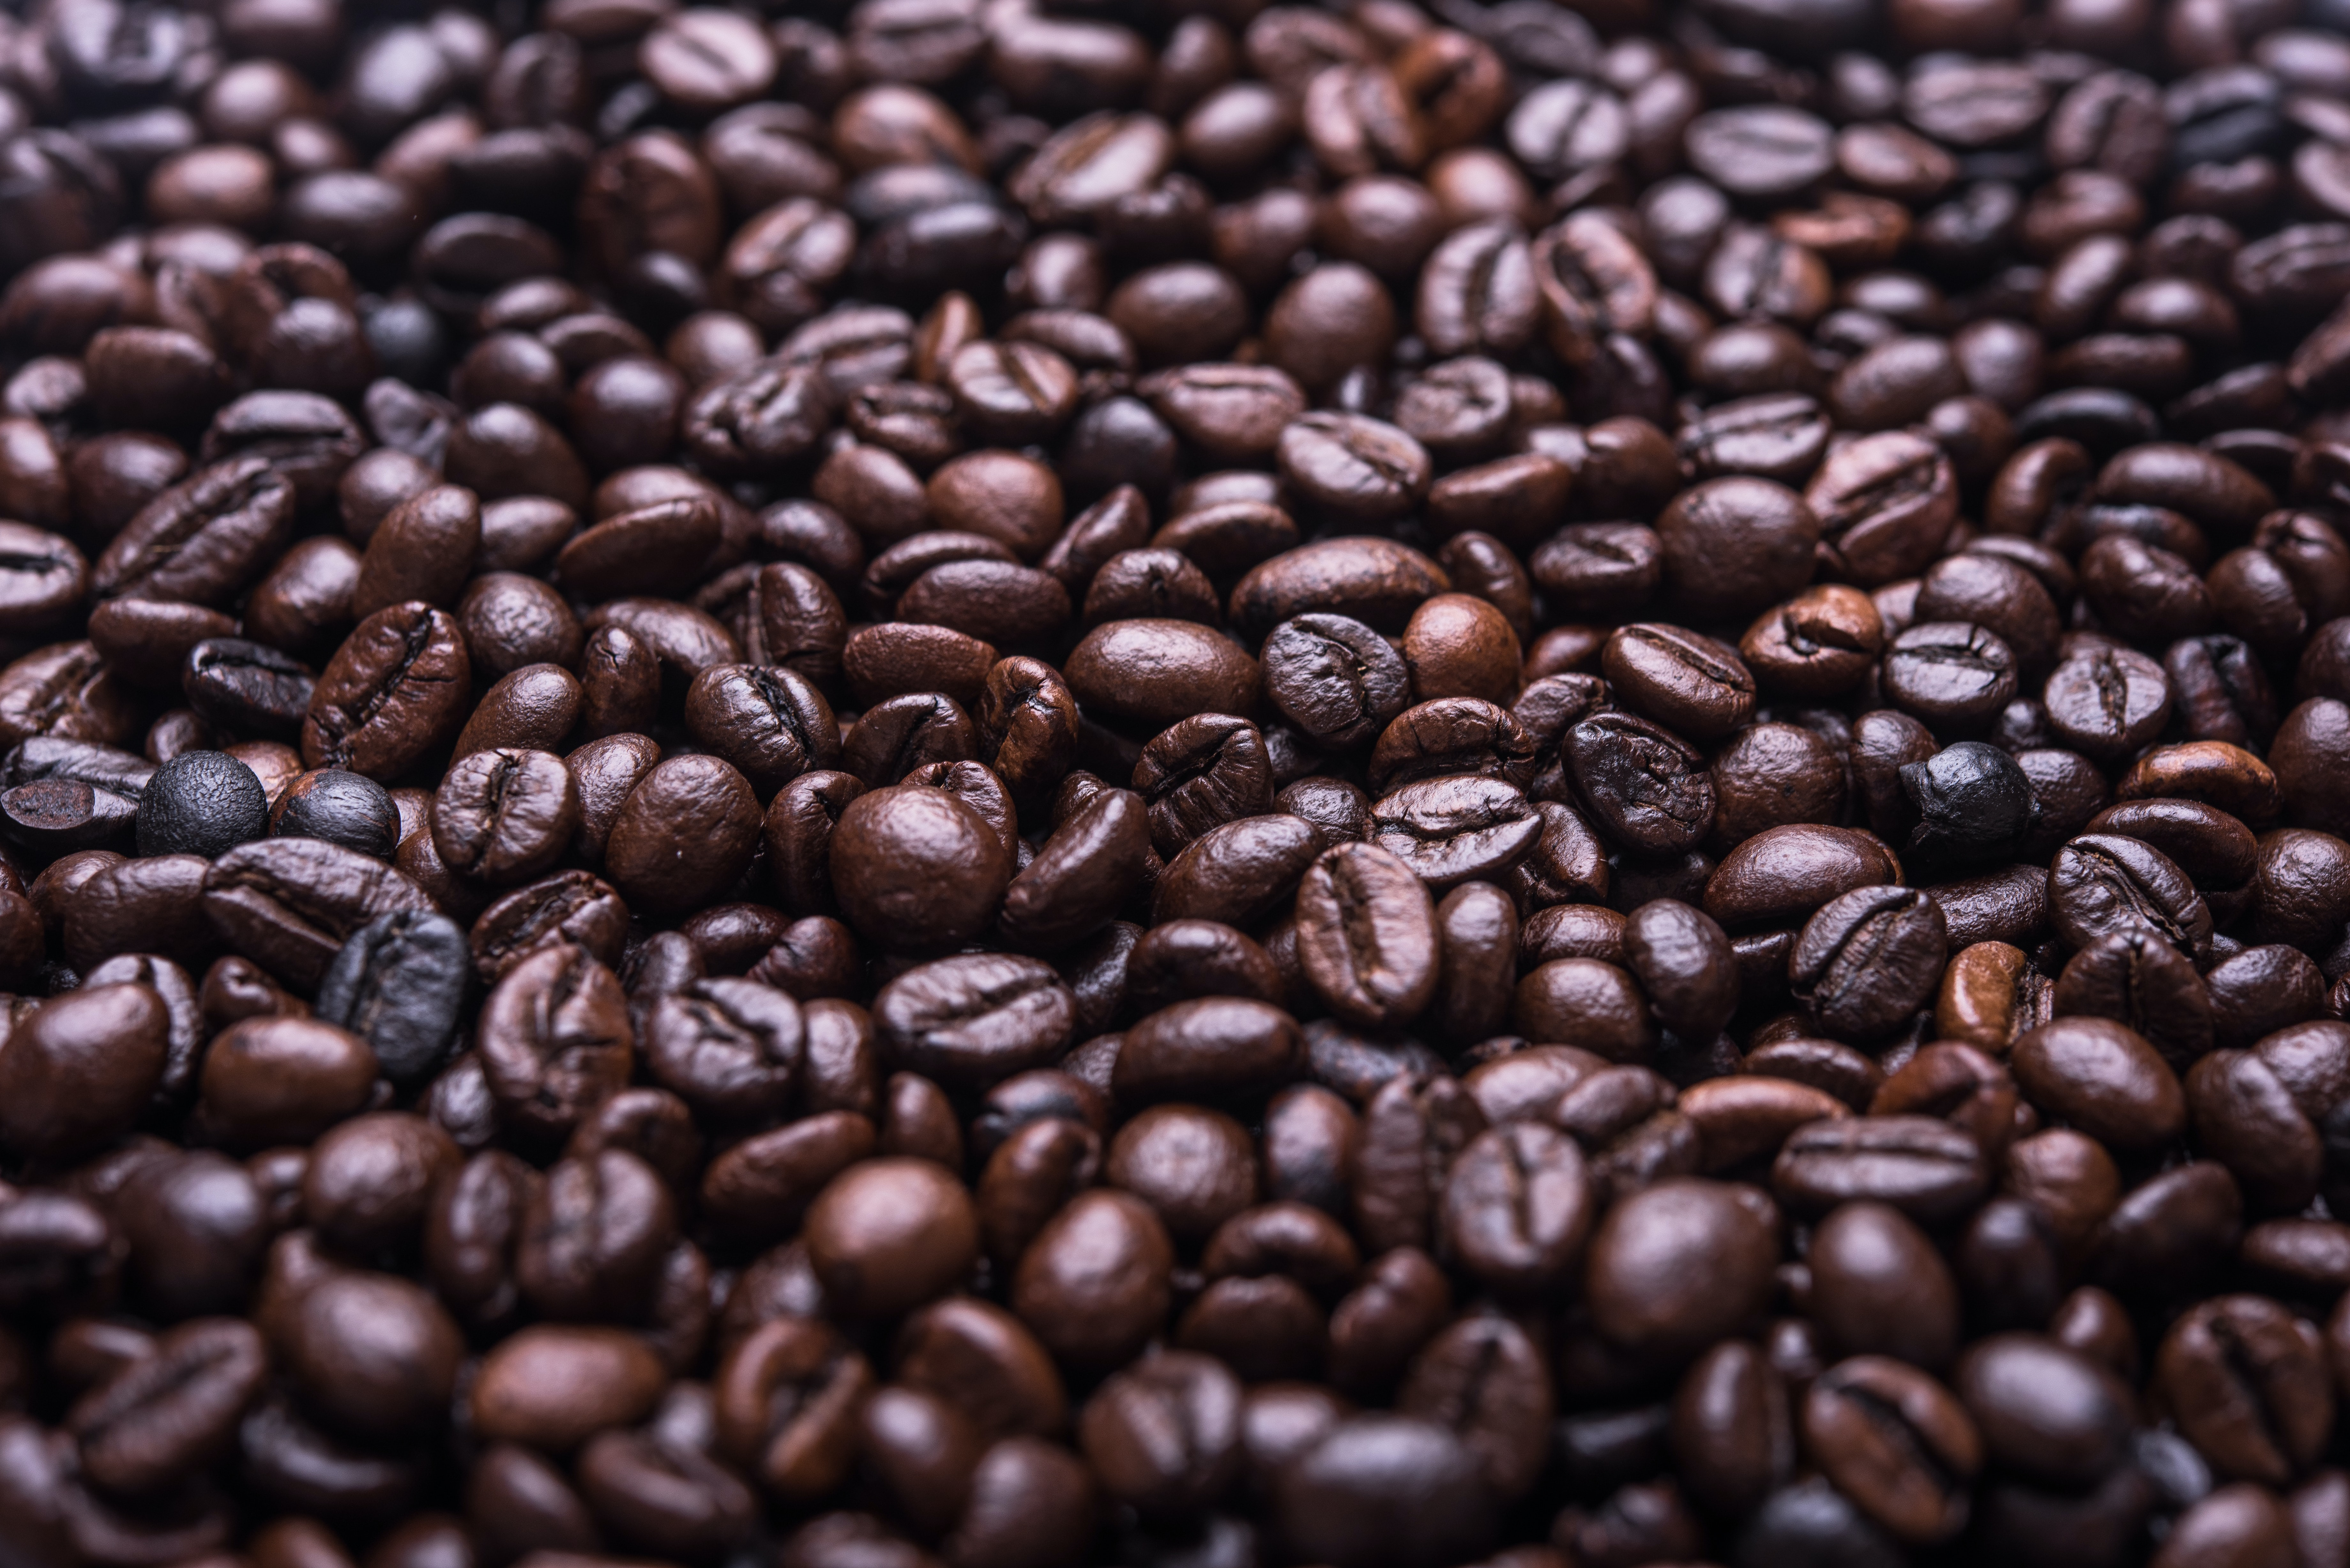 photograph of roasted coffee beans